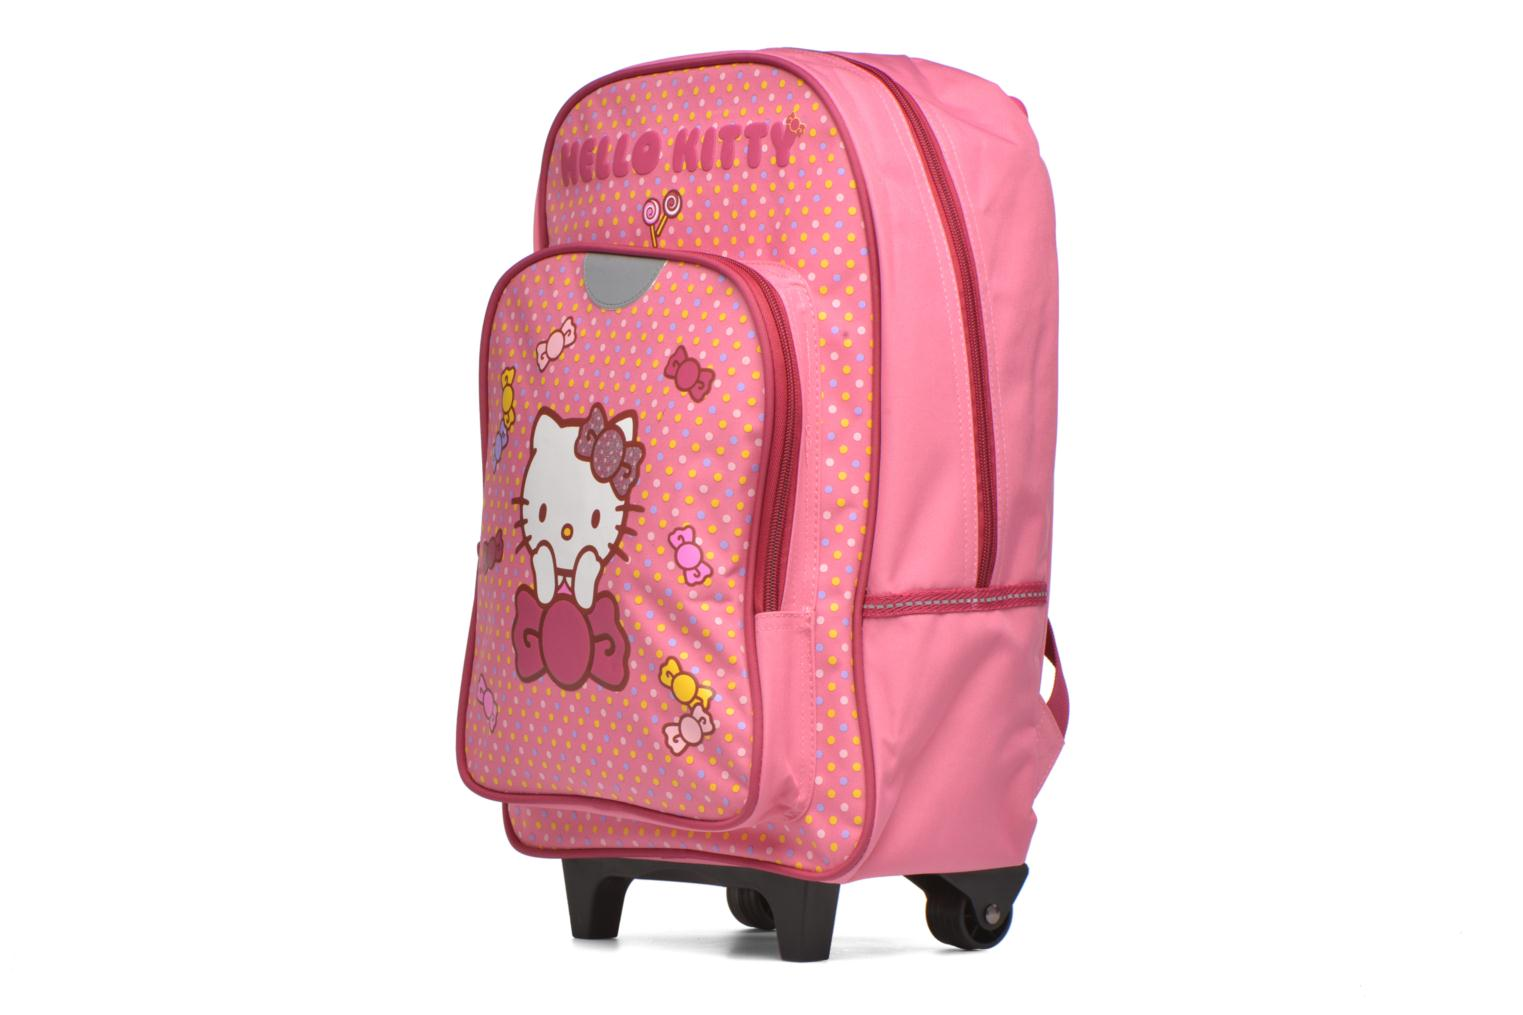 Scolaire Hello Kitty Hello Kitty Sac à dos à roulettes Rose vue portées chaussures